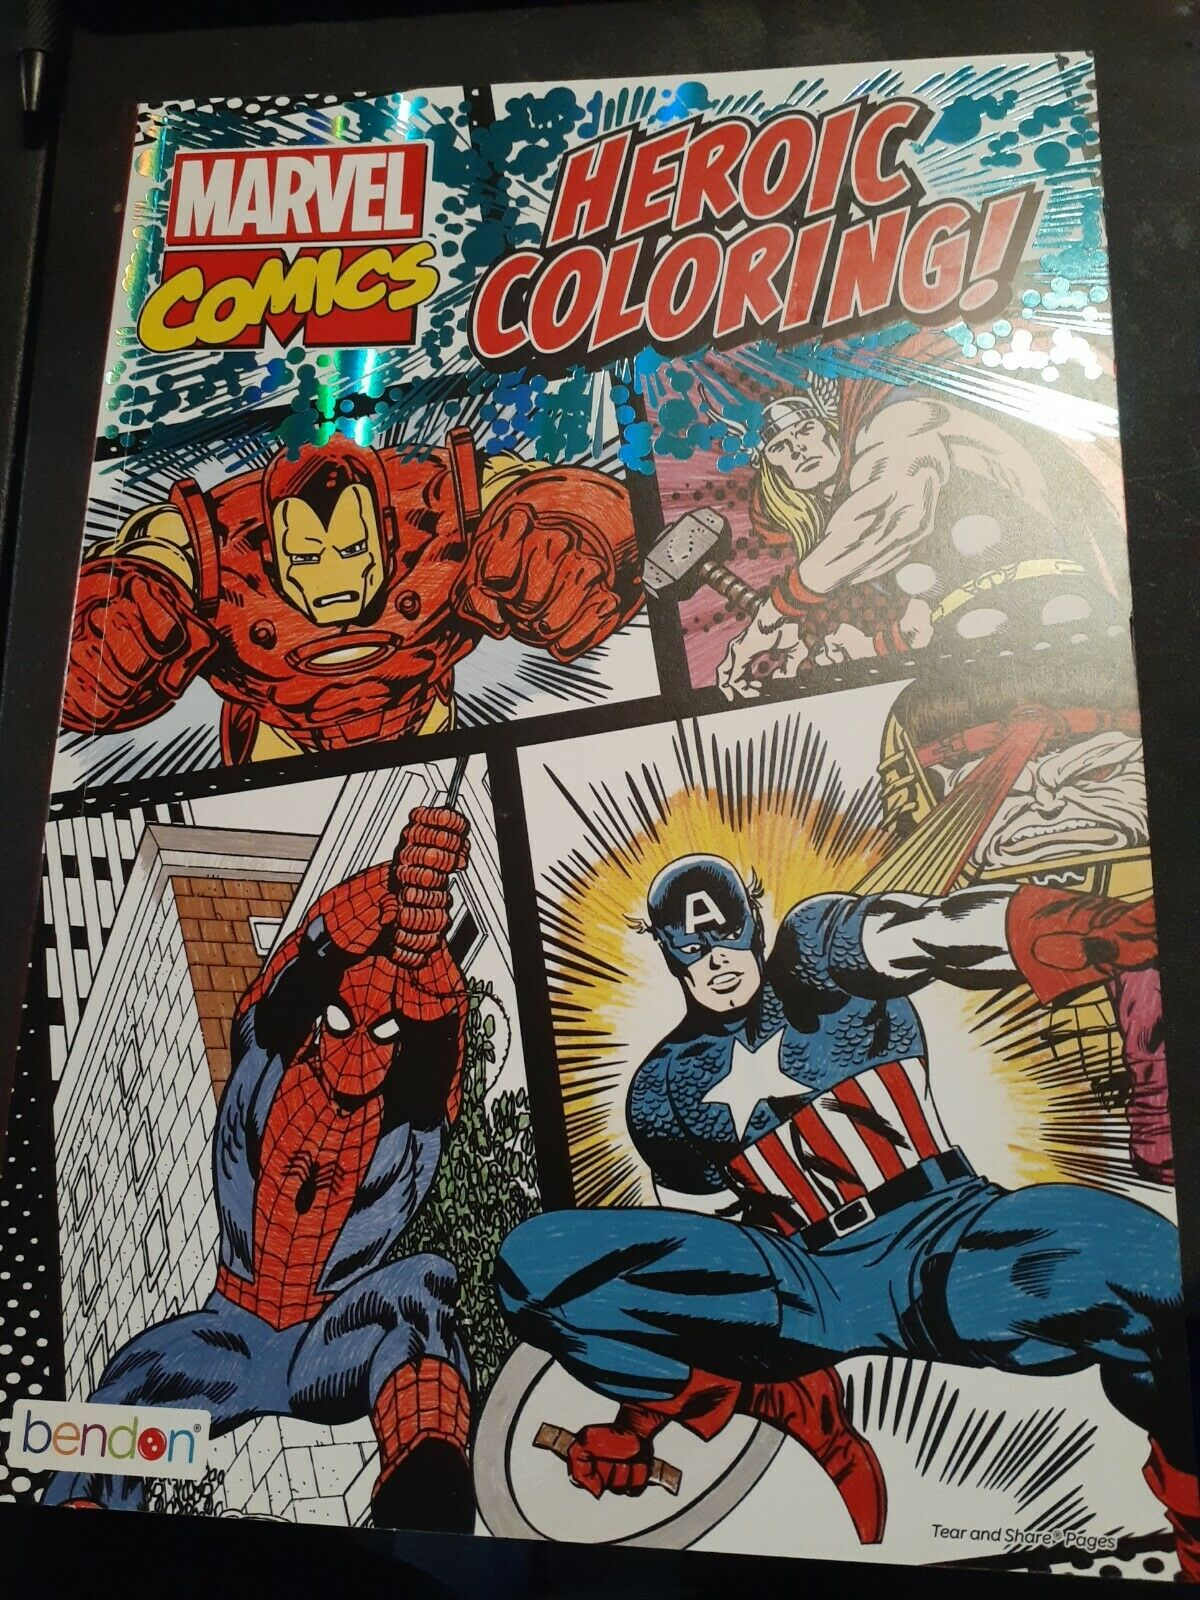 Marvel Comics Heroic Coloring Book Classic Marvel Characters Paperback Book New For Sale Online